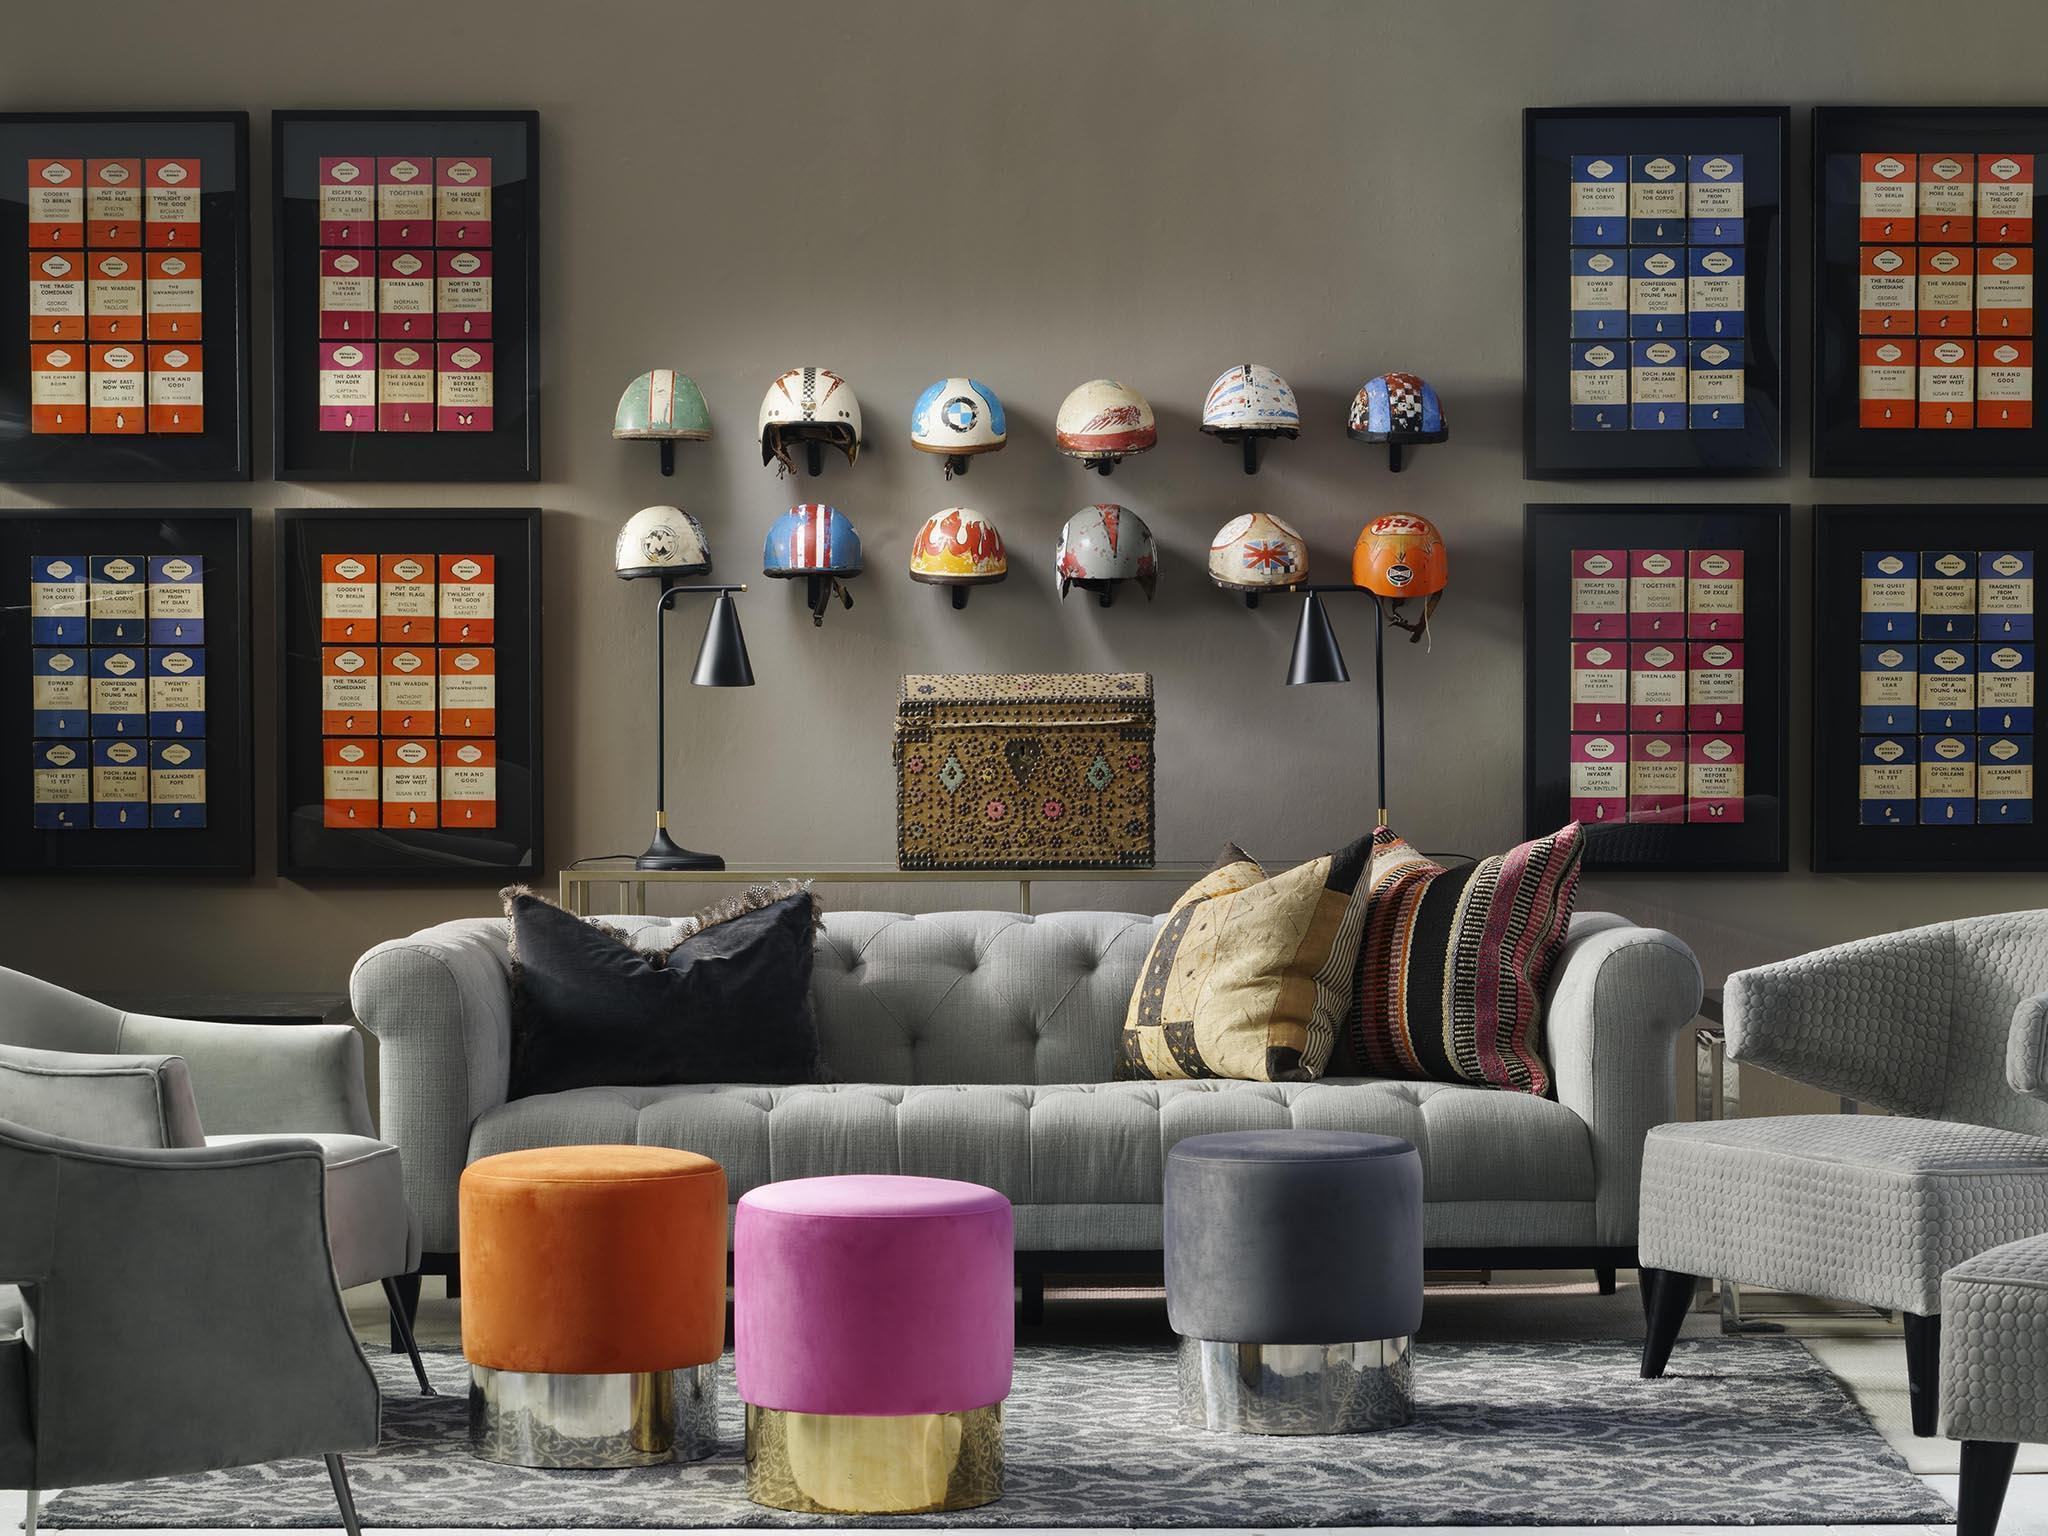 Transform your interiors with mixed material furnishings